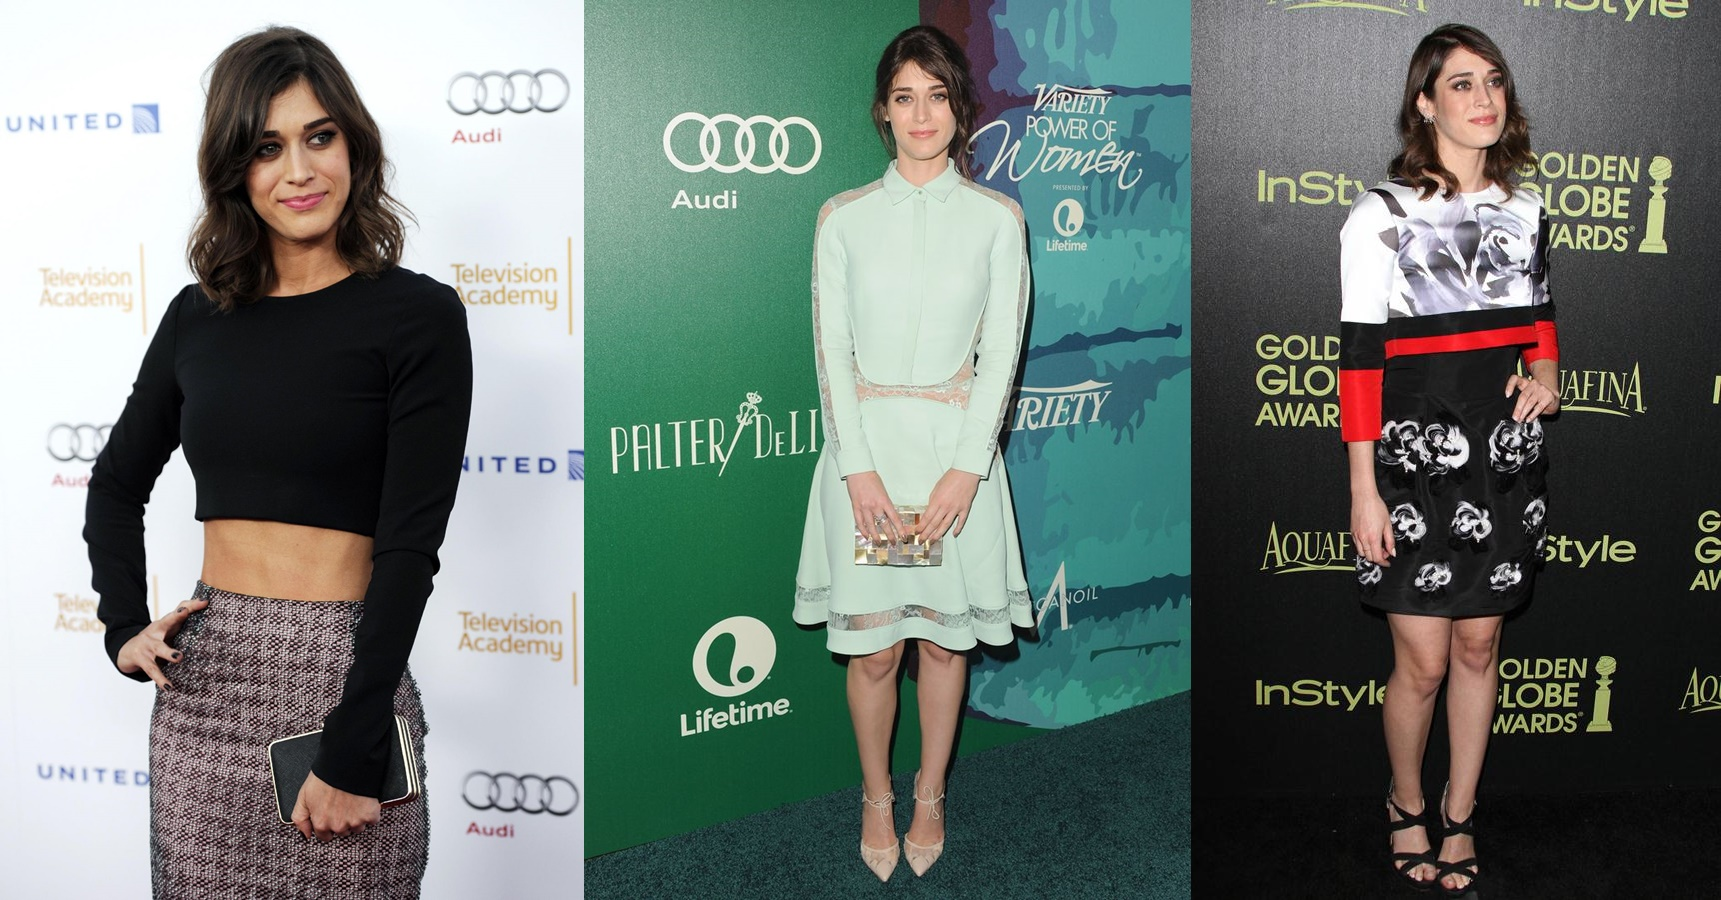 Underrated Style Stars - Lizzy Caplan | emma-elsewhere.com